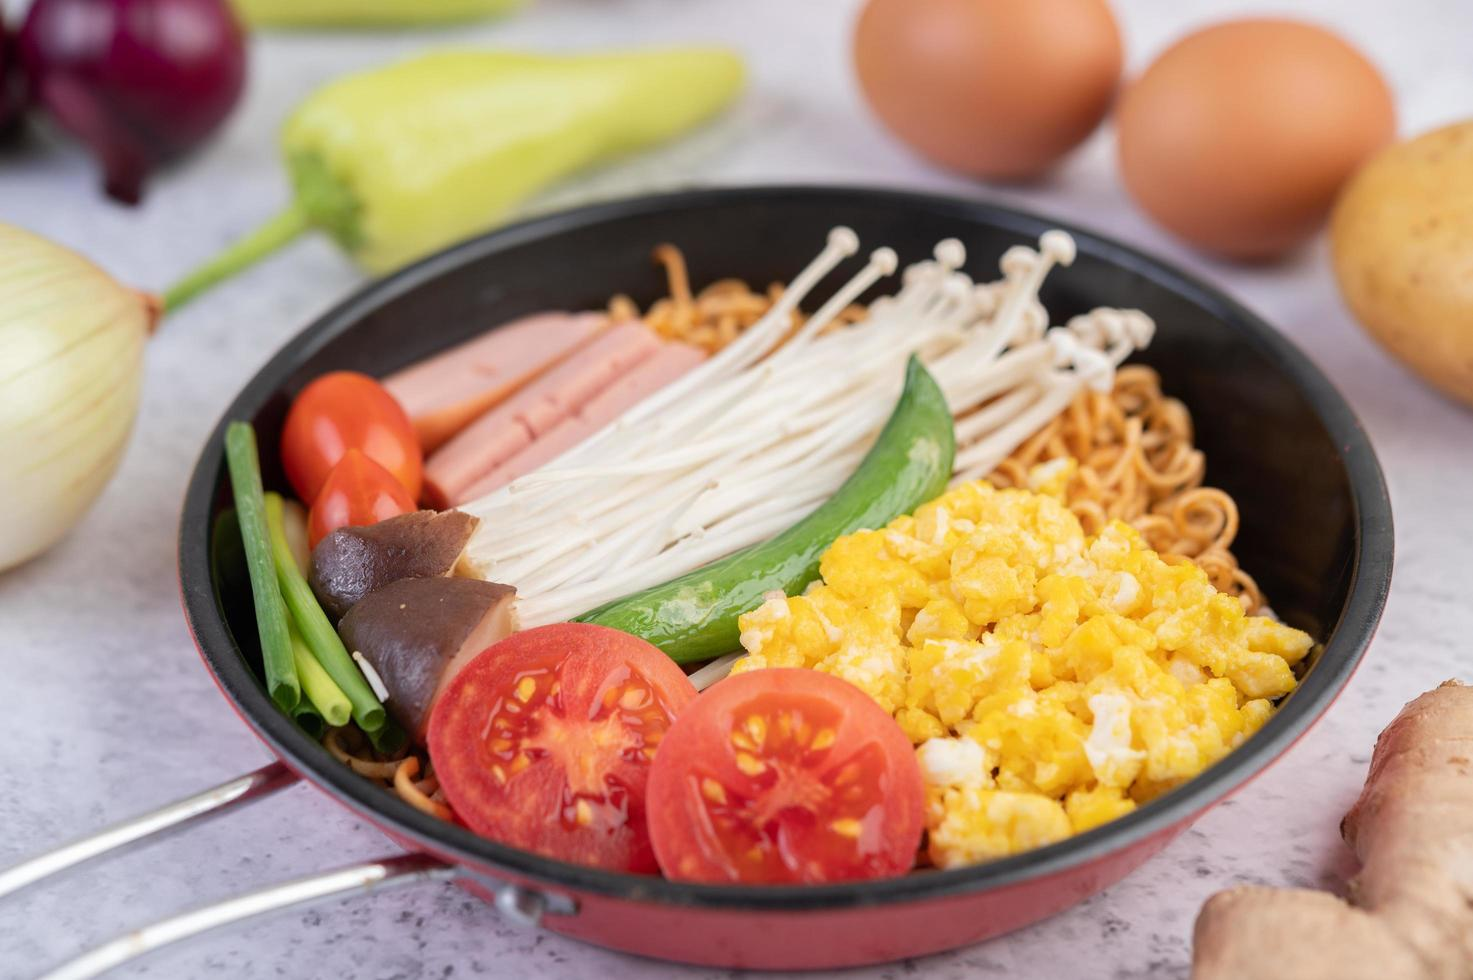 Stir-fried noodles with corn, golden needle mushroom, tomato, sausage and edamame photo